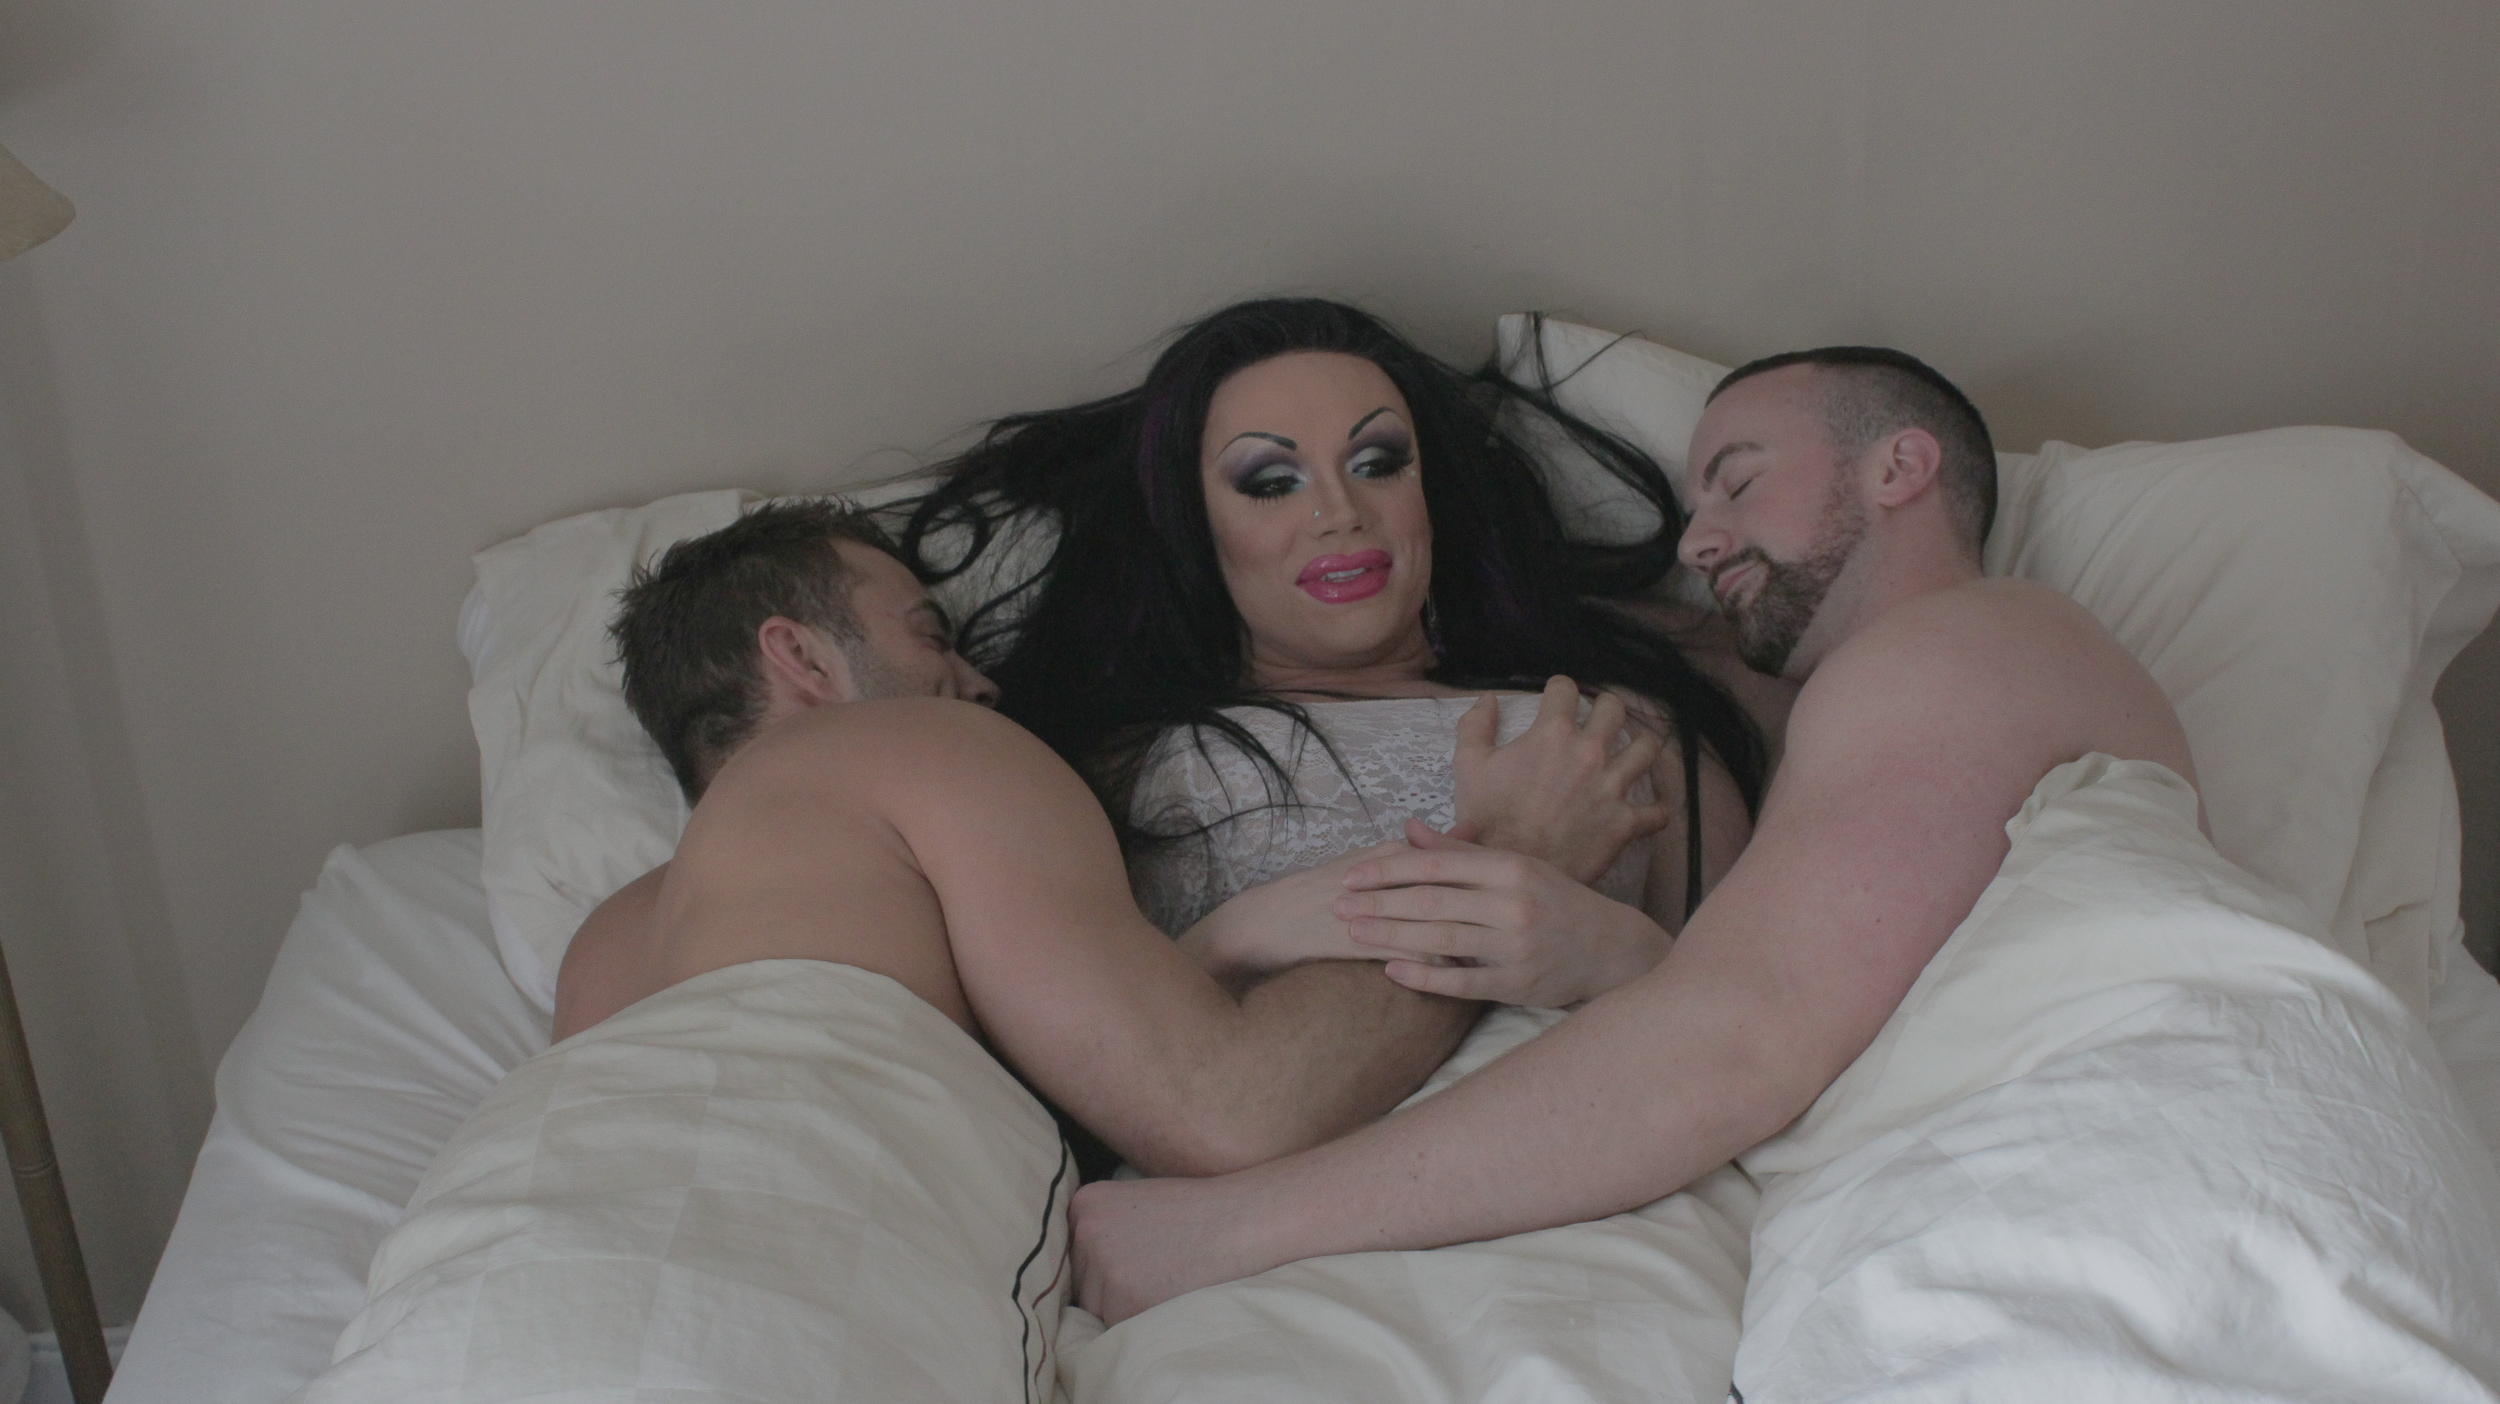 Busy in bed with her men, Todd and Riley. They broke up 4 days after filming.